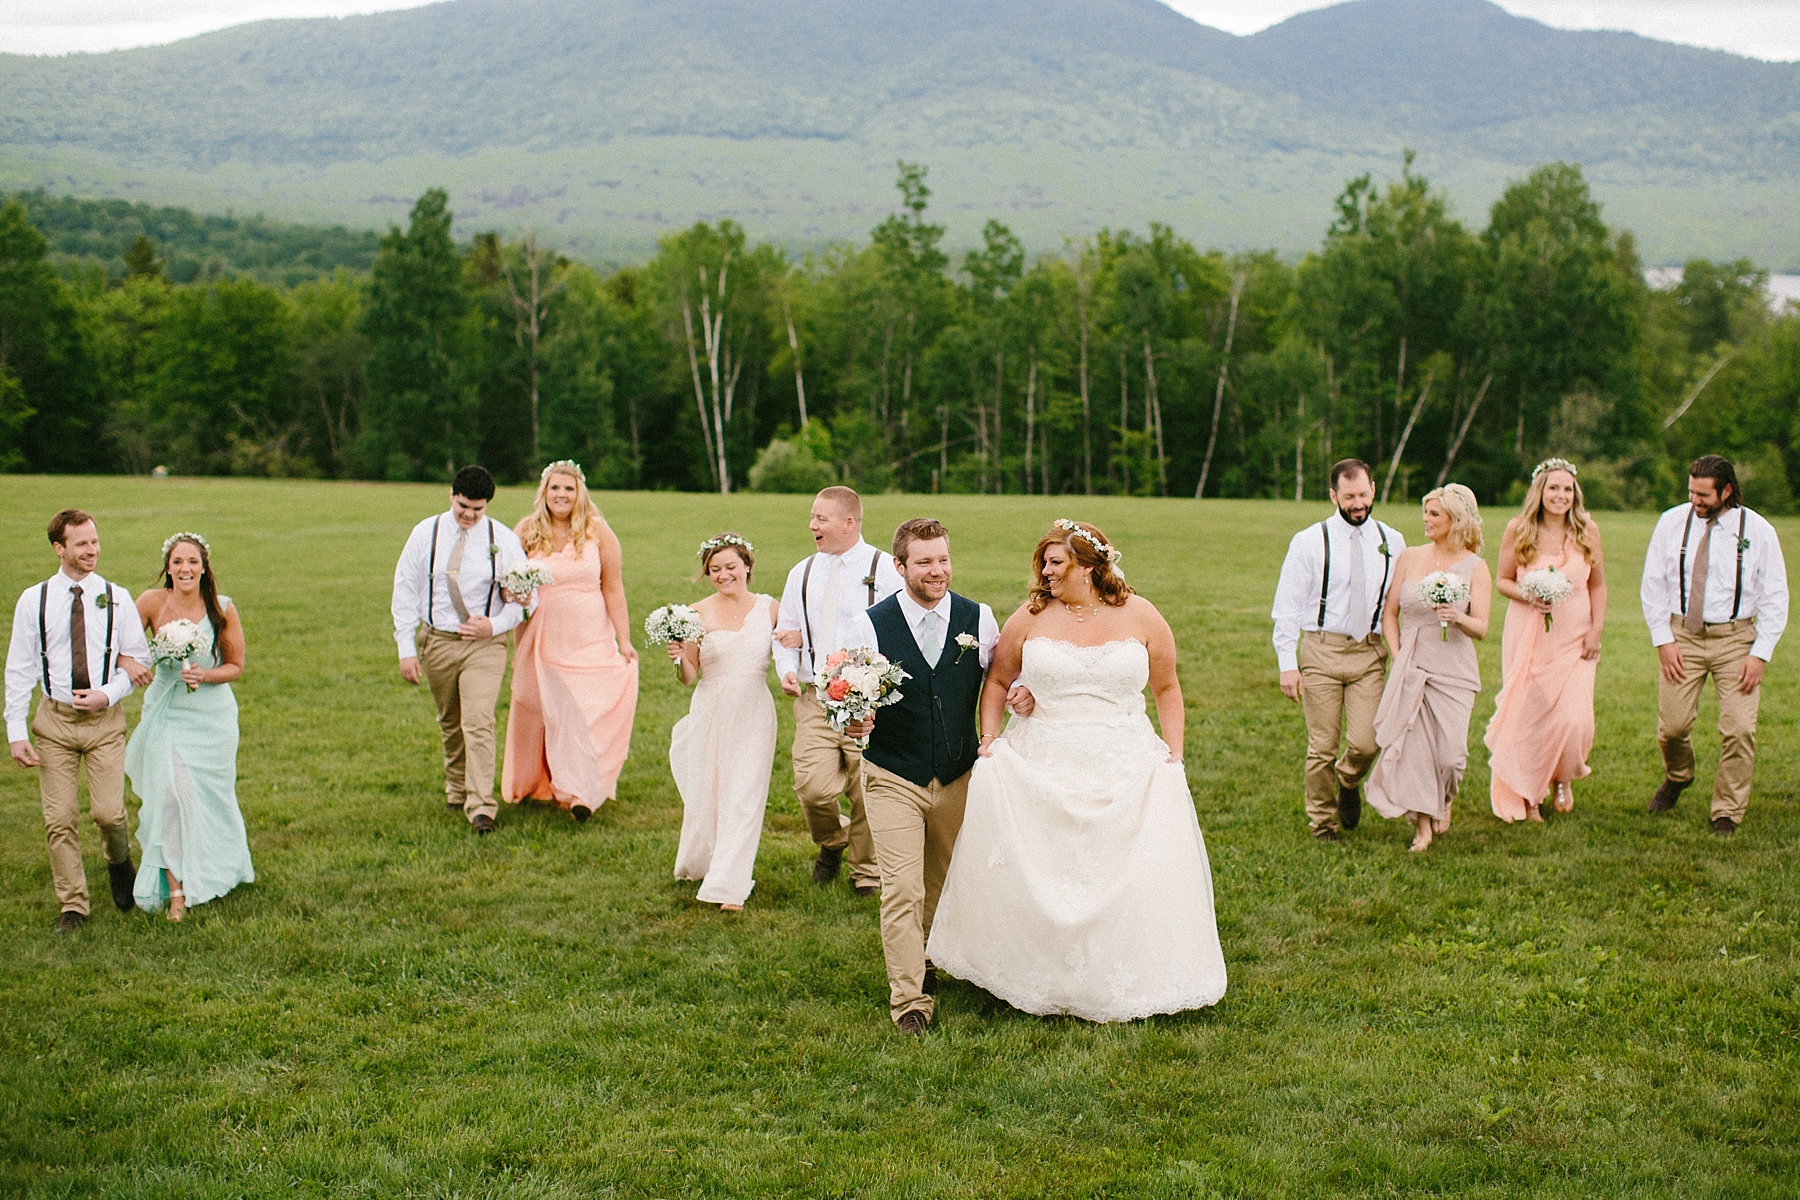 vermont-outdoor-wedding-ceremony-photographer_0015.jpg